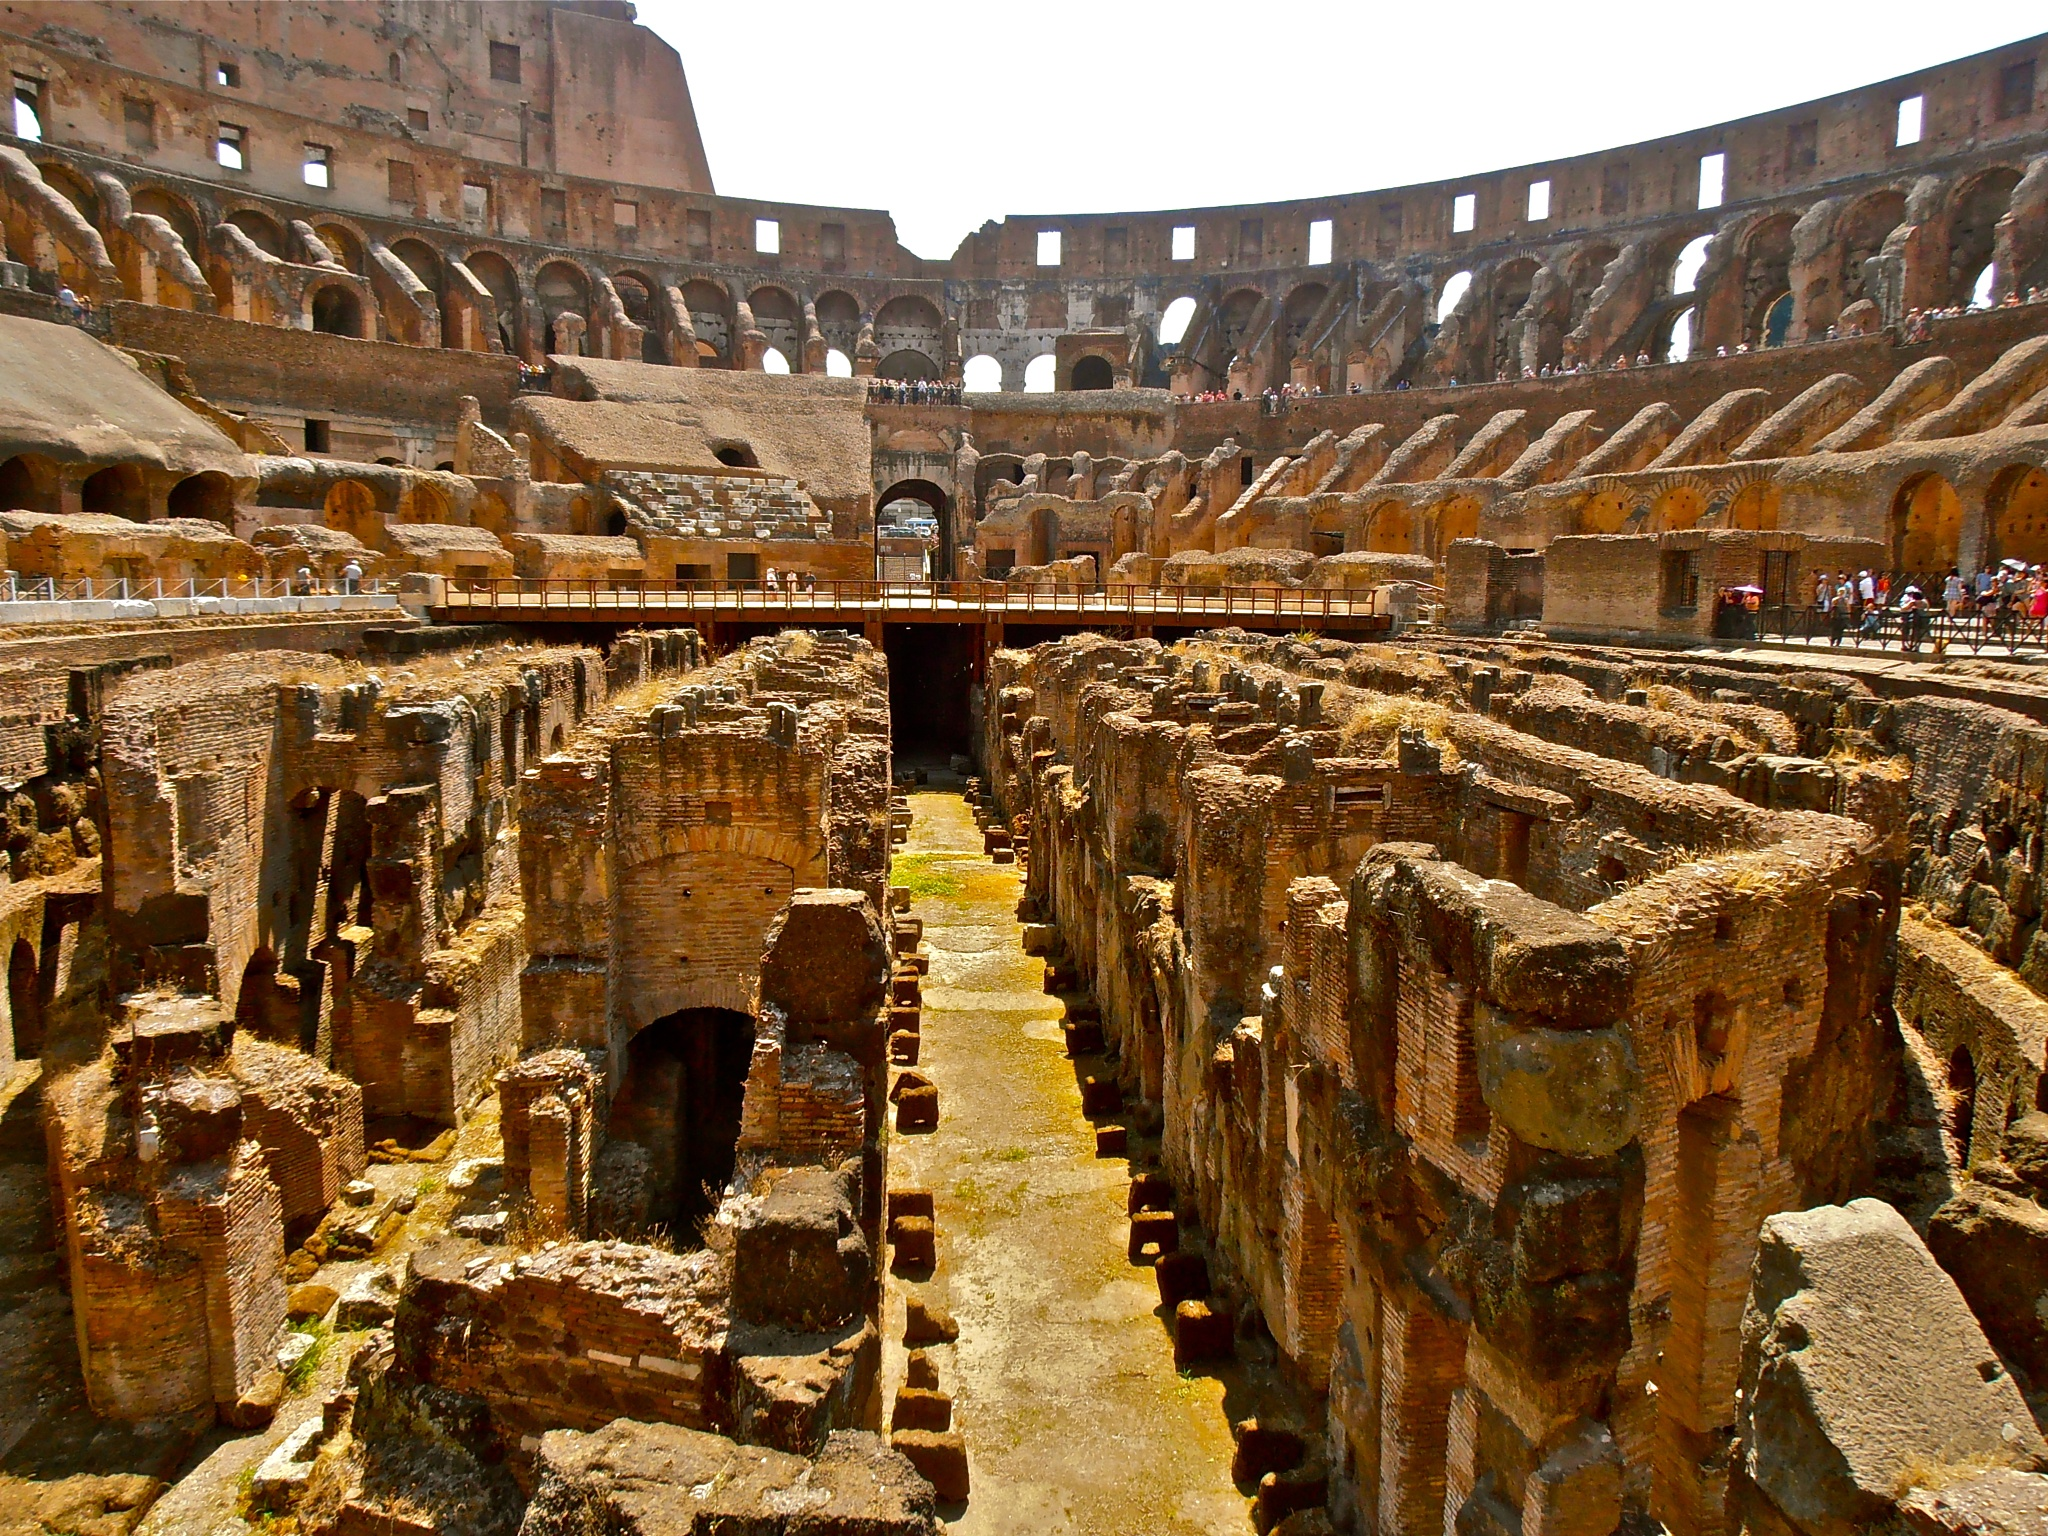 Inside the Colosseum by Dejan&Milica